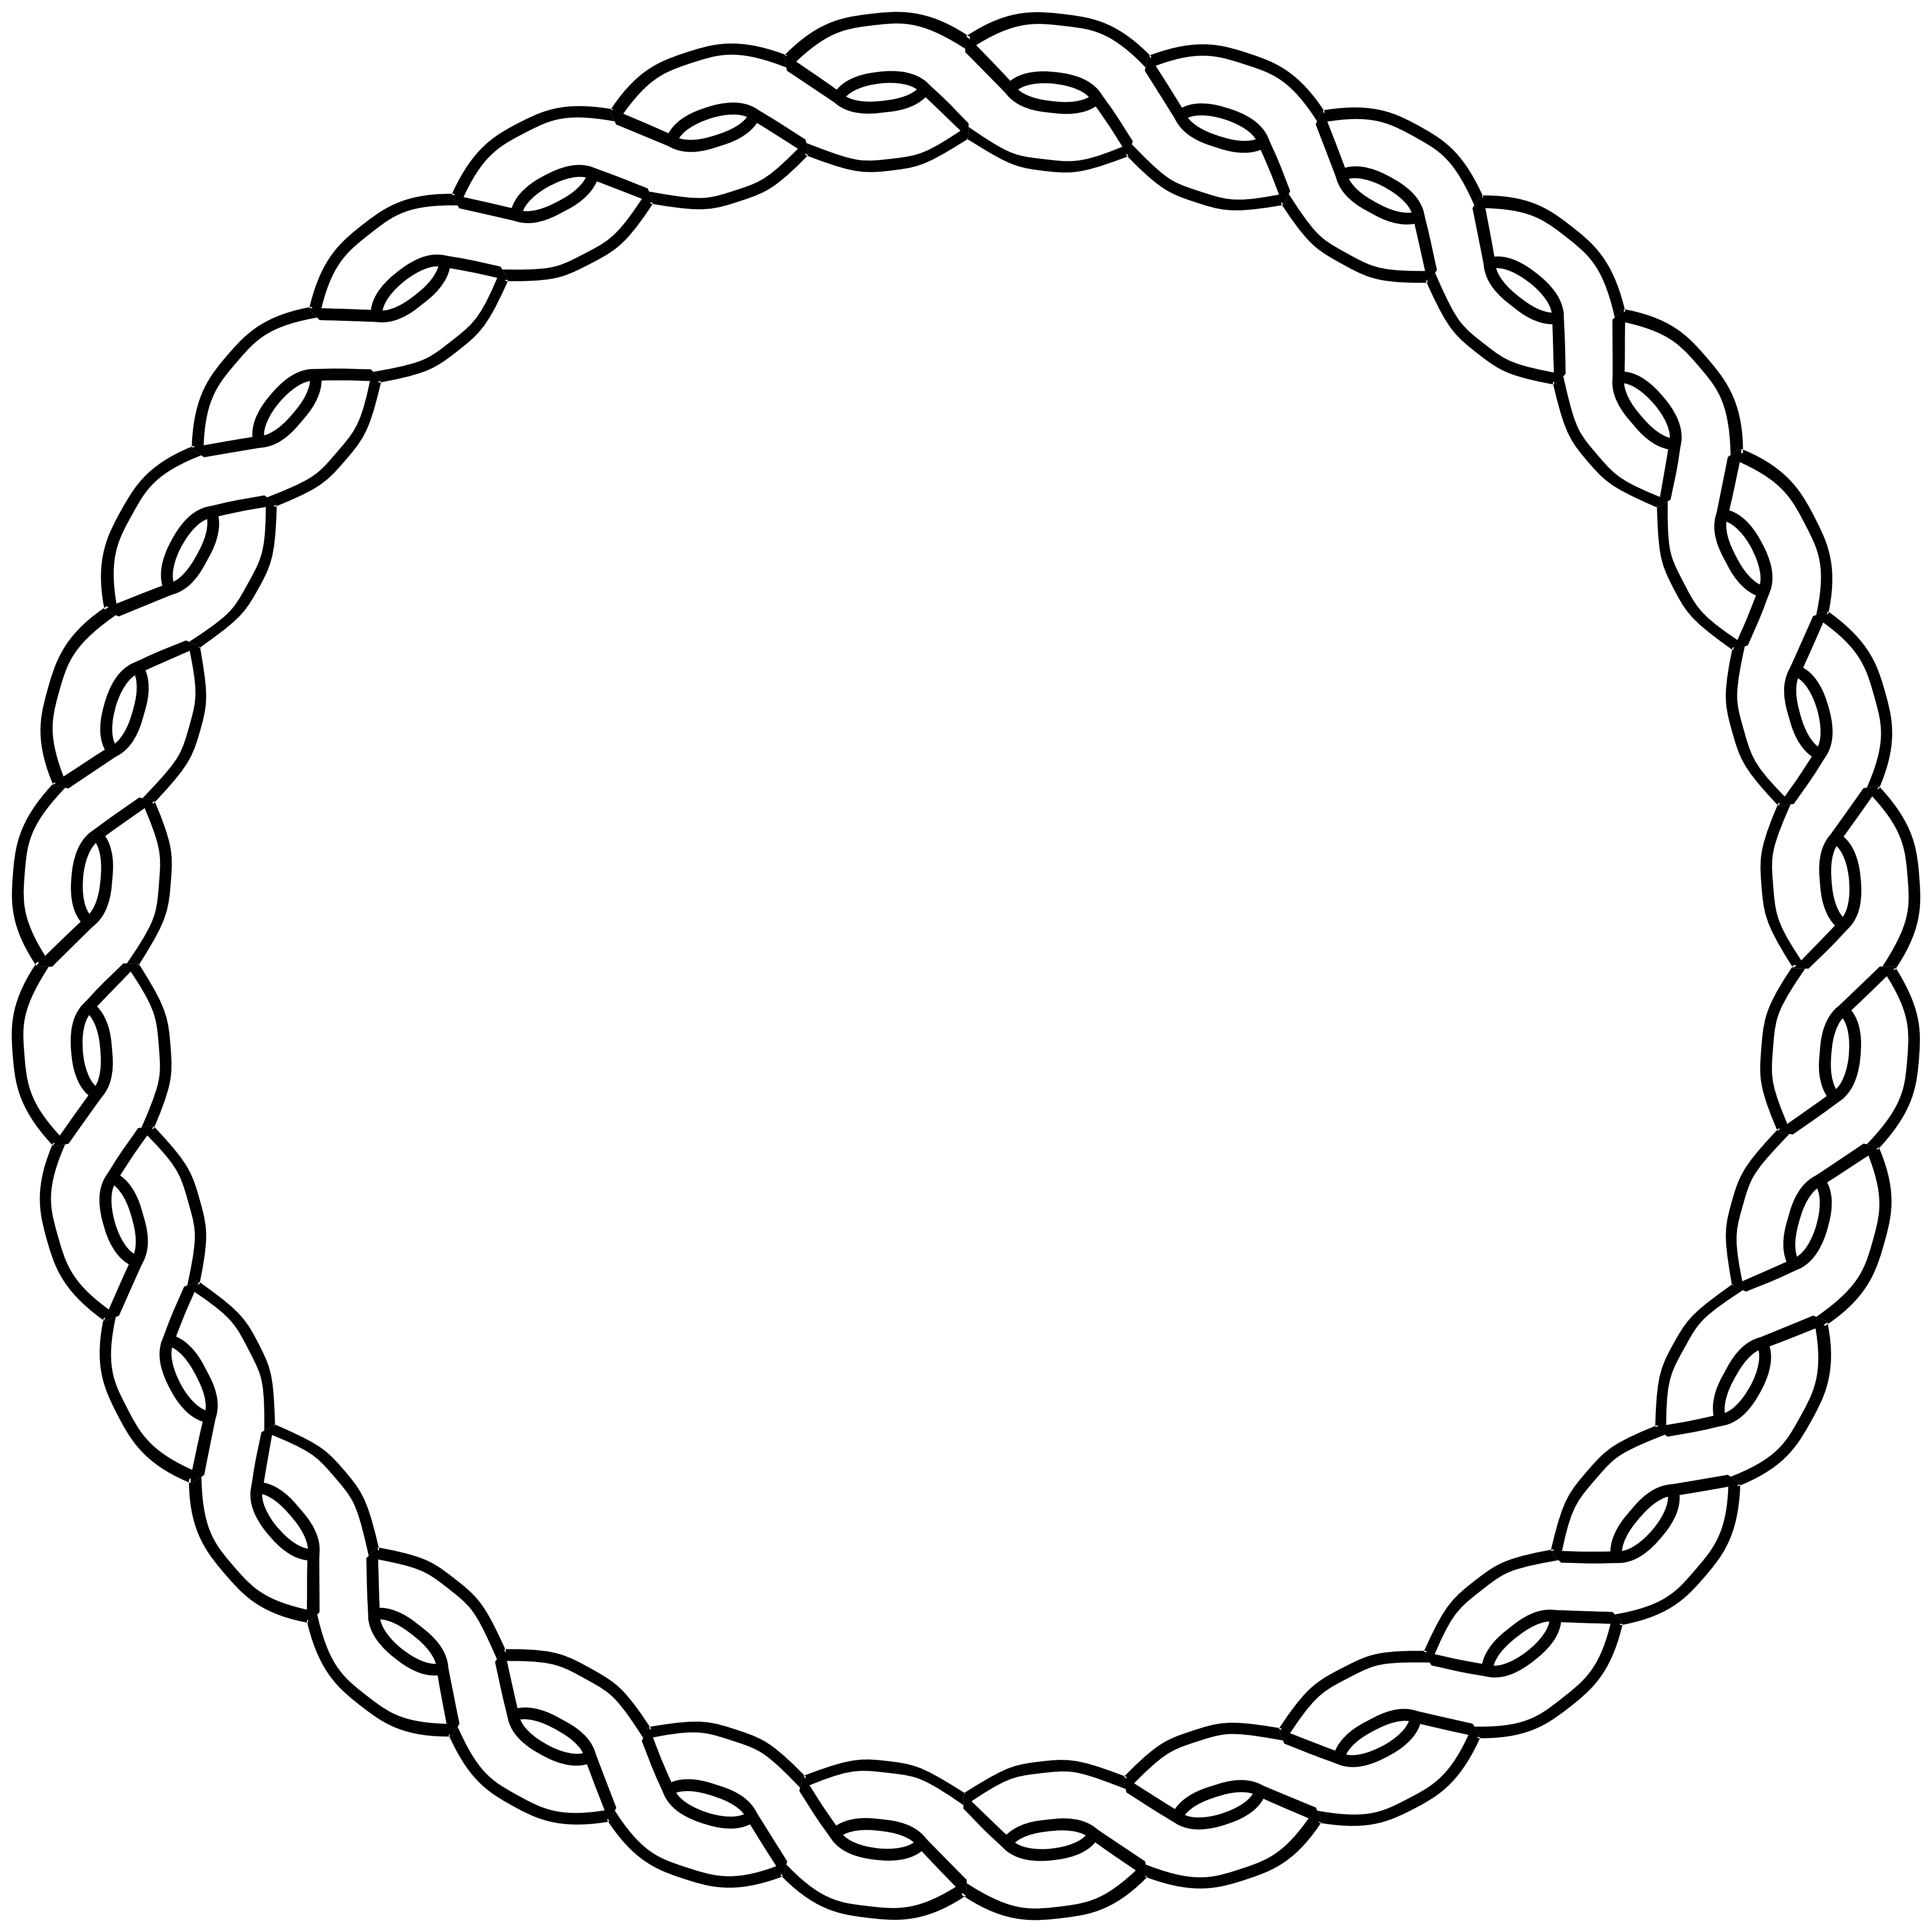 Rope black and white. Dna clipart jpeg